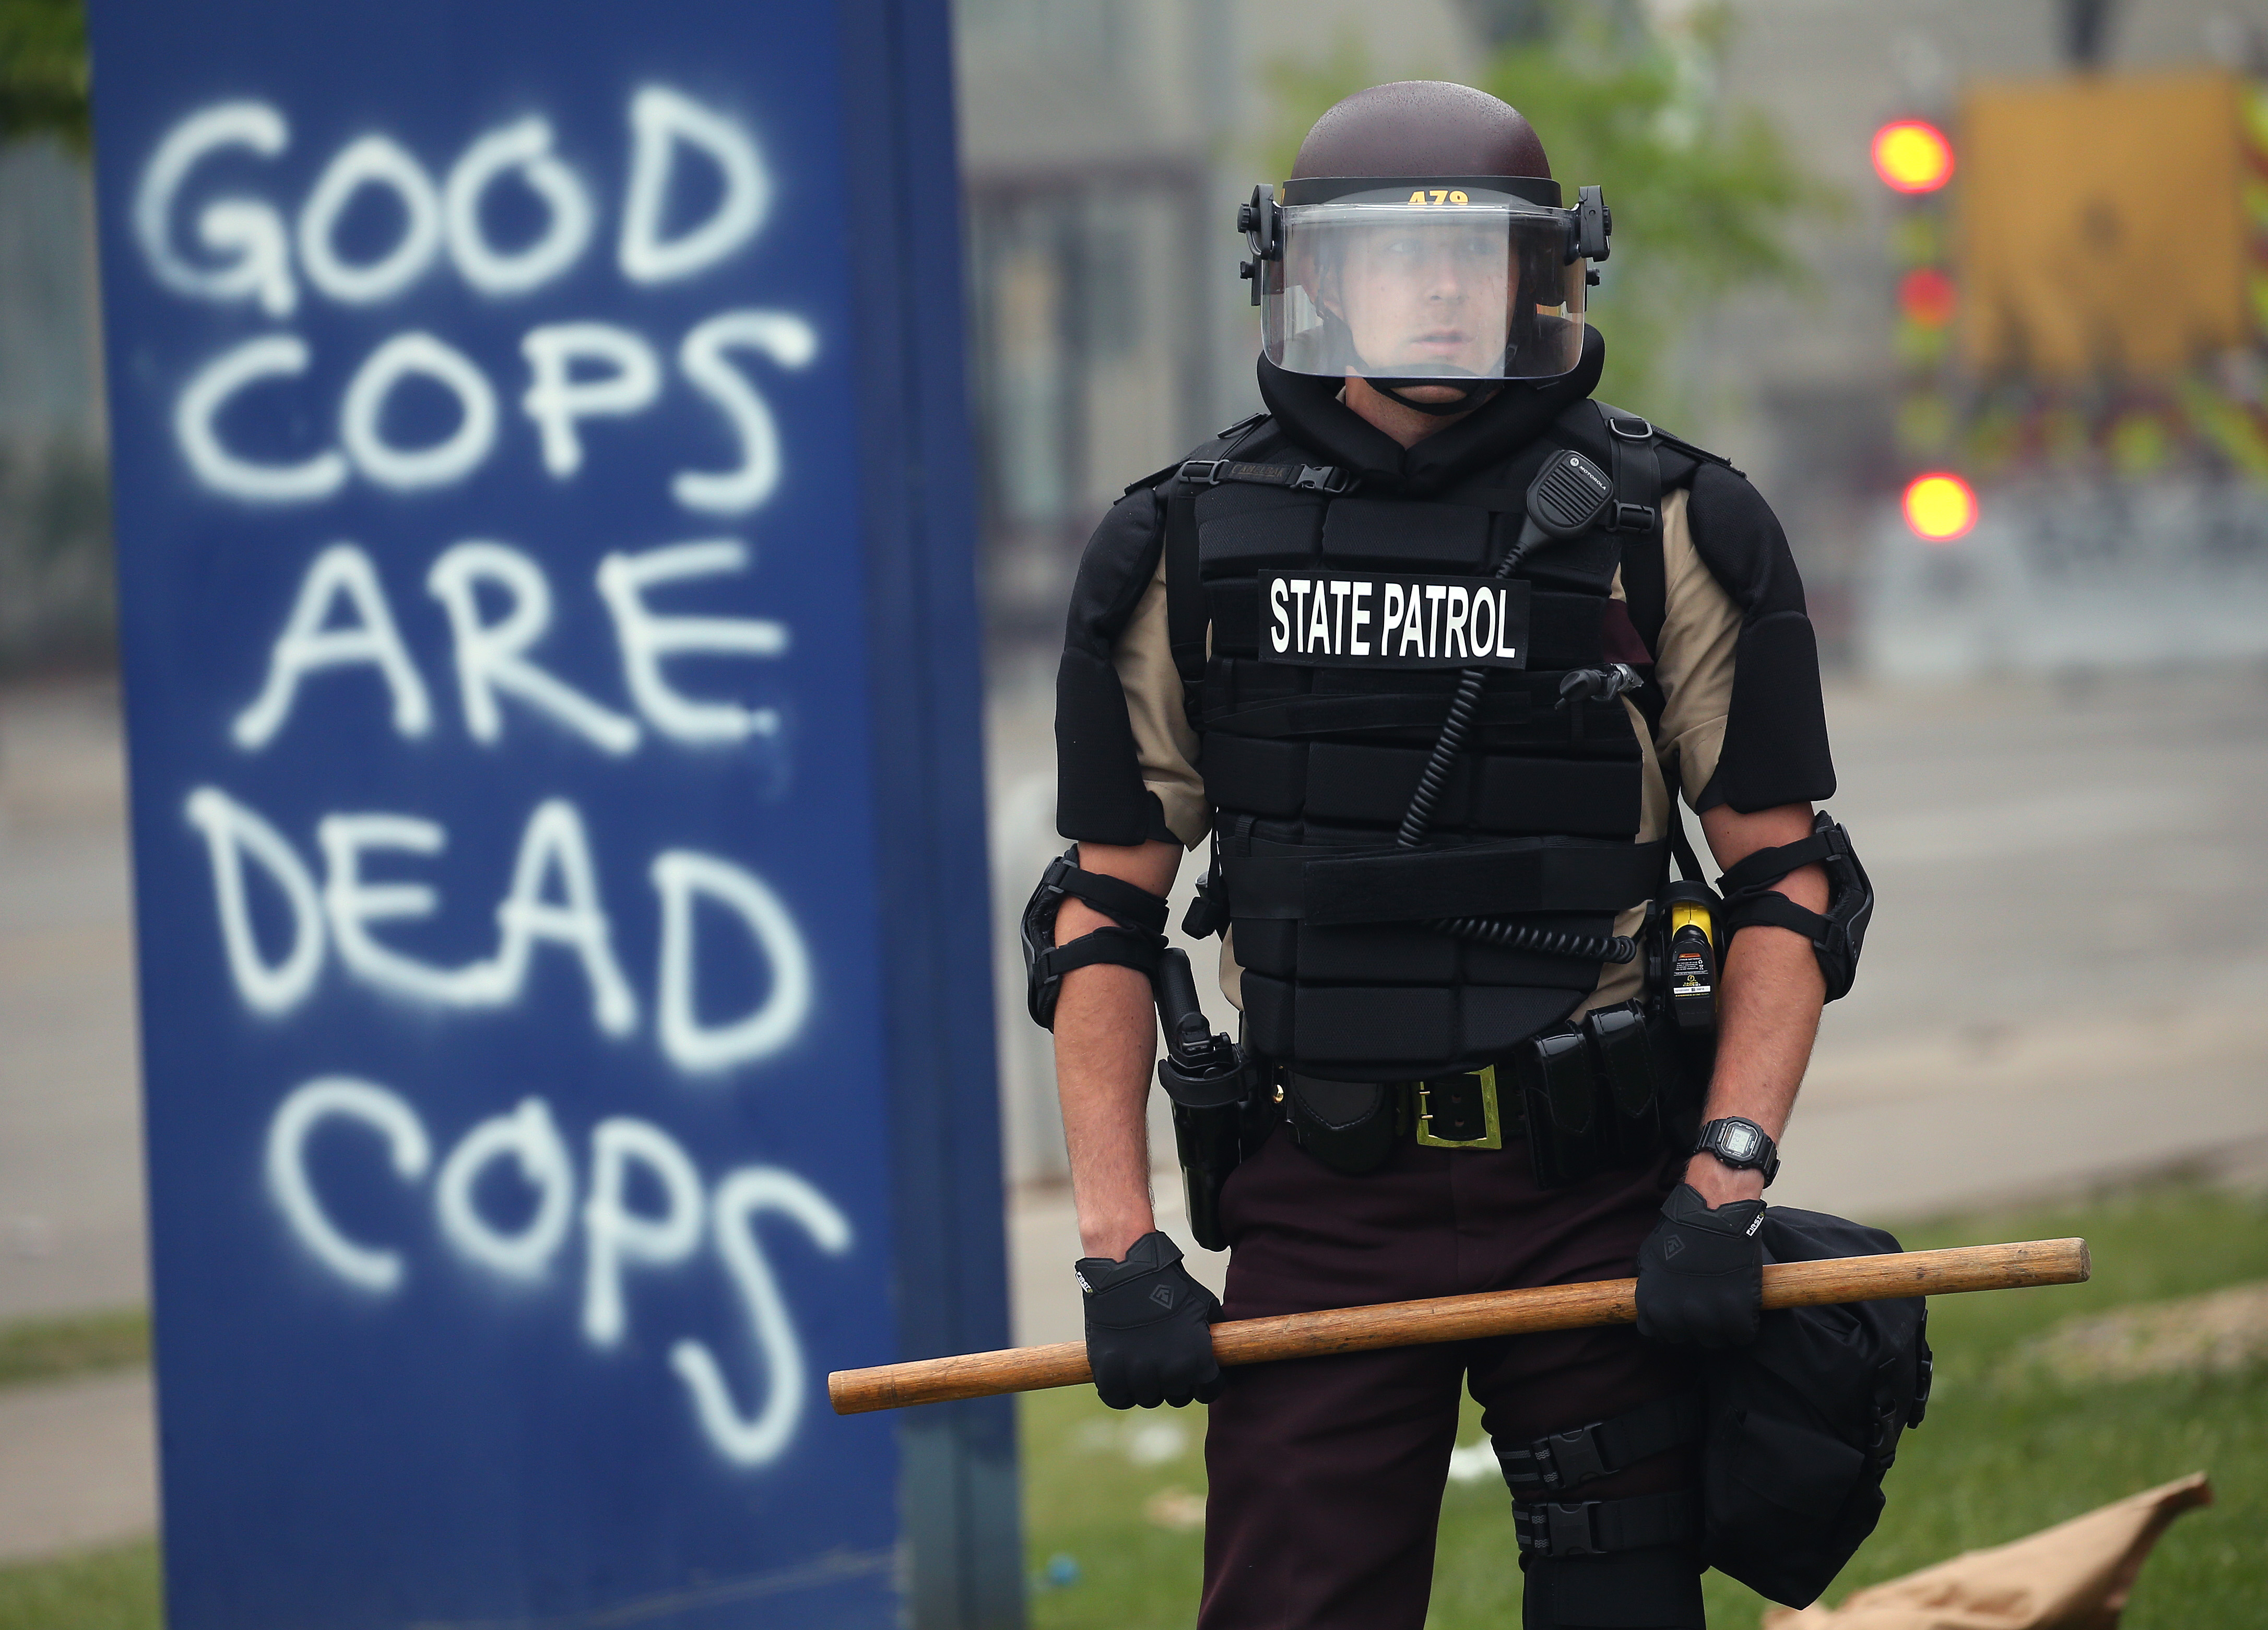 MINNEAPOLIS, MINNESOTA - MAY 29: A member of the State Patrol stands guard on the fourth day of protests on May 29, 2020 in Minneapolis, Minnesota. The National Guard has been activated as protests continue after the death of George Floyd which has caused widespread destruction and fires across Minneapolis and St. Paul. (Photo by Scott Olson/Getty Images)